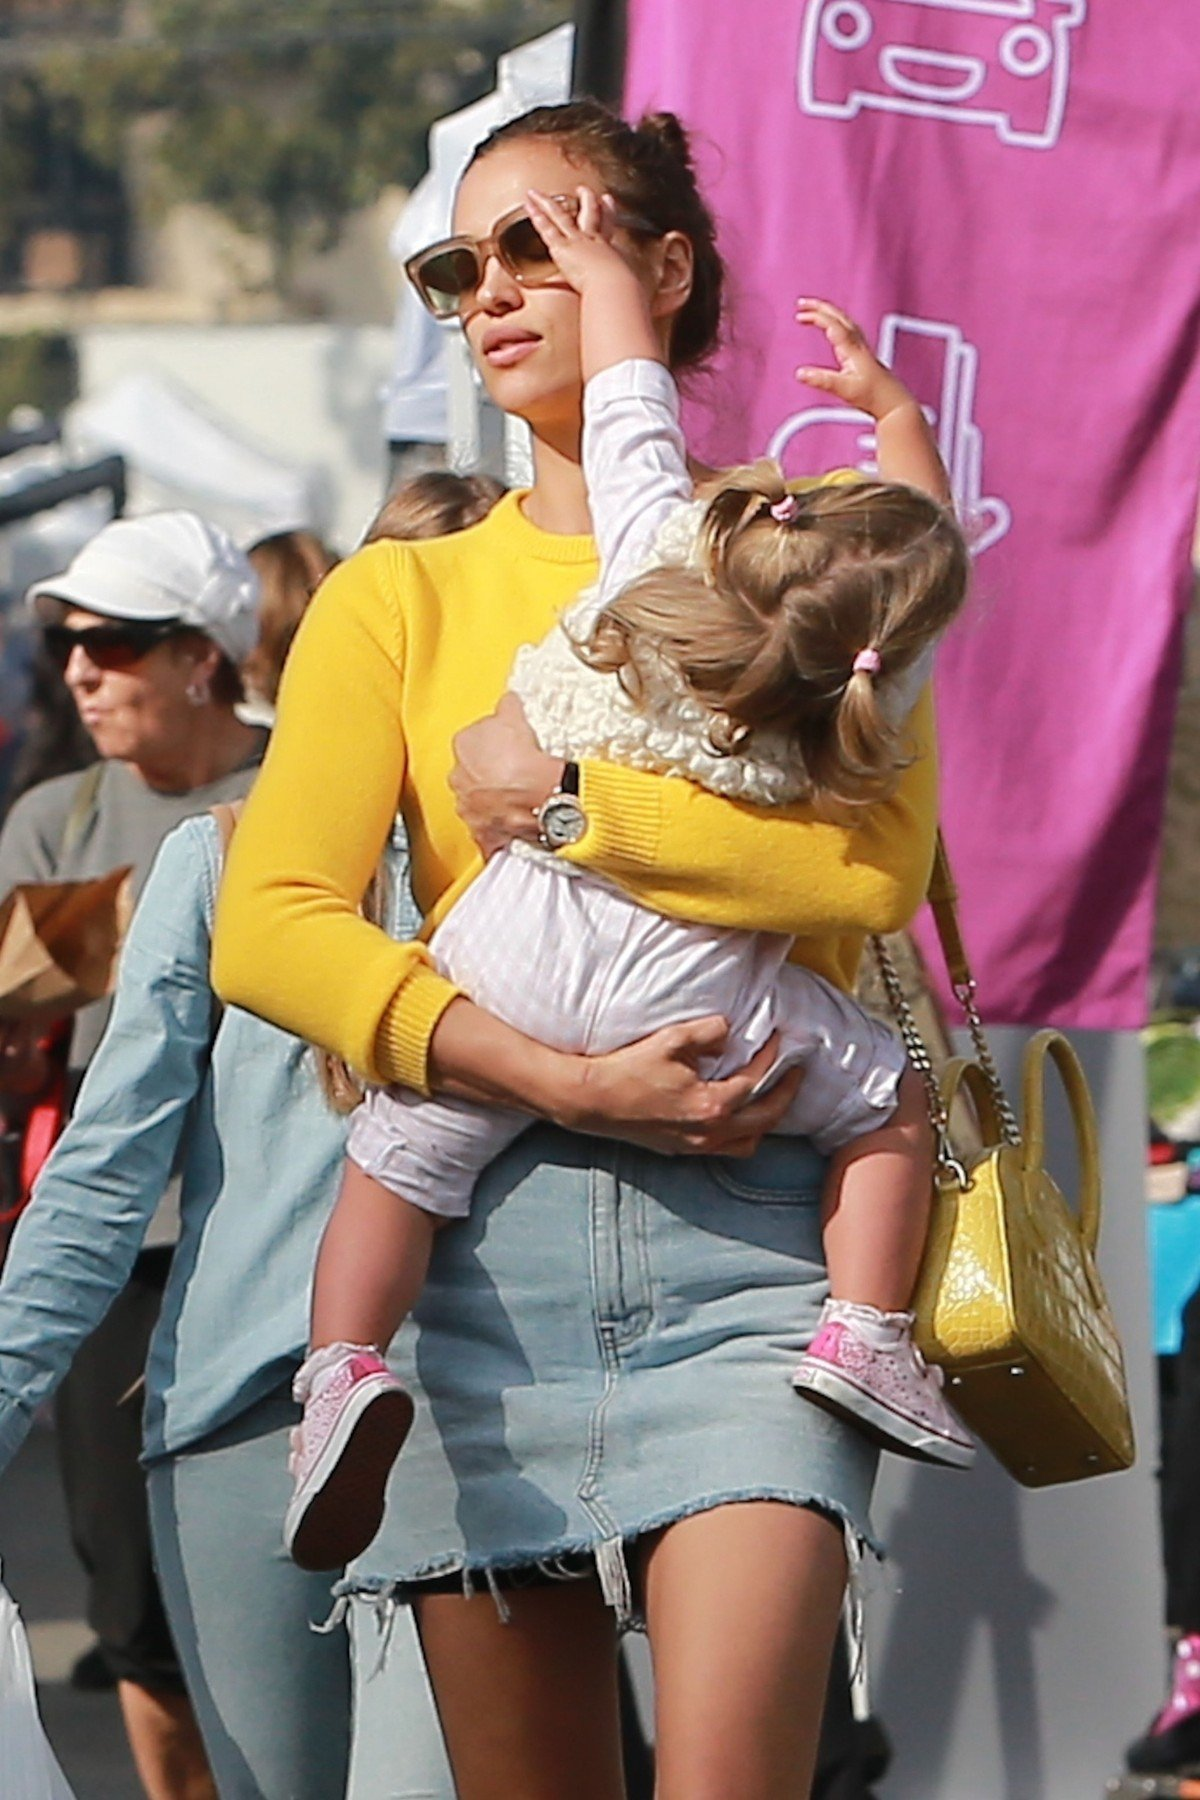 Studio City, CA  - *EXCLUSIVE*  - Model, Irina Shayk's daughter, Lea De Seine Shayk Cooper, is not having it at the Farmer's market. The 1-year-old throws what appears to be a tantrum while mom carries her away into their ride.  Pictured: Irina Shayk    *UK Clients - Pictures Containing Children Please Pixelate Face Prior To Publication*, Image: 404081128, License: Rights-managed, Restrictions: , Model Release: no, Credit line: Profimedia, AKM-GSI